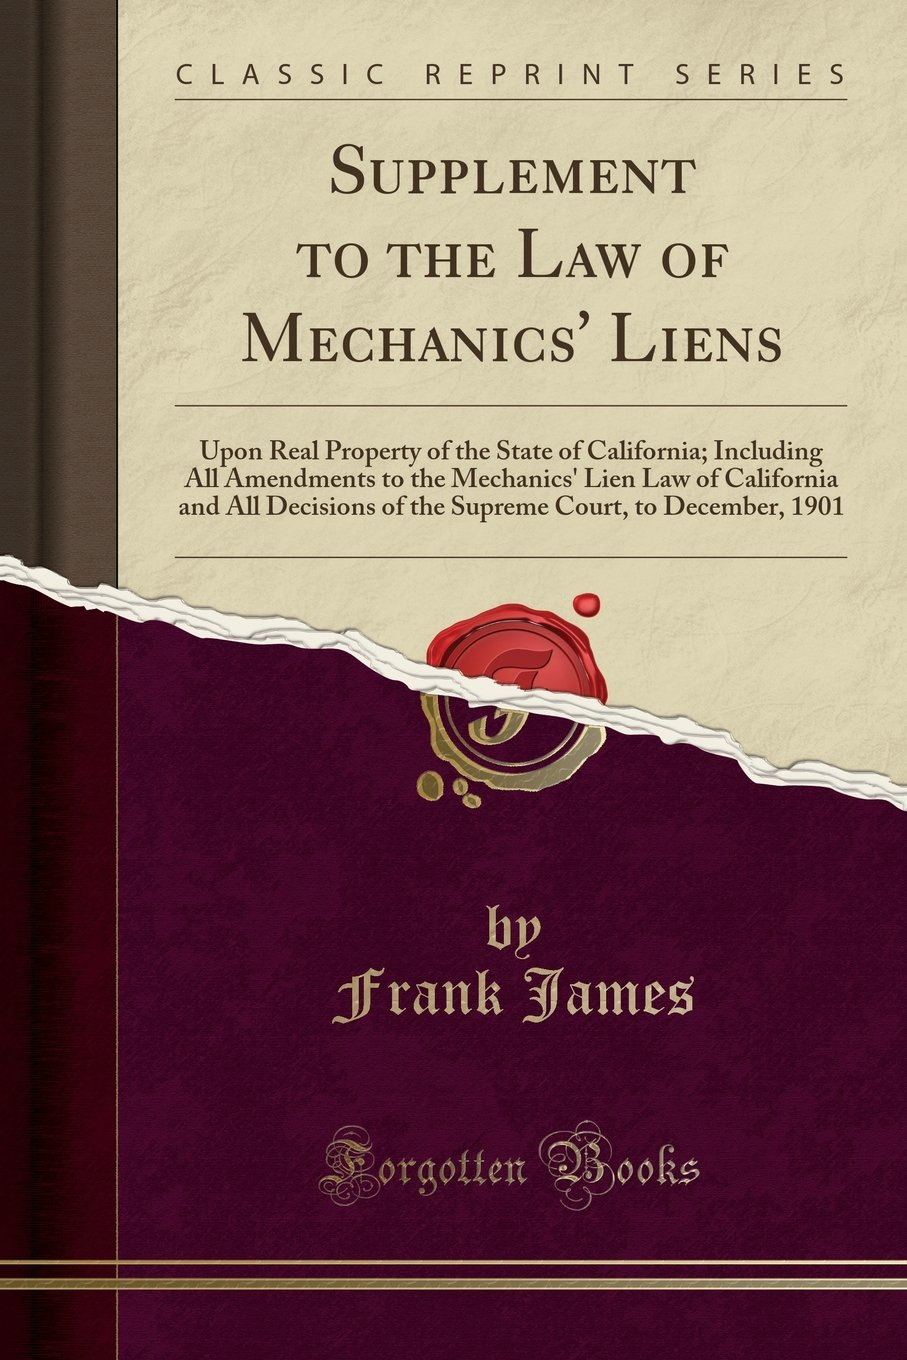 Supplement to the Law of Mechanics' Liens: Upon Real Property of the State of California; Including All Amendments to the Mechanics' Lien Law of ... Court, to December, 1901 (Classic Reprint) pdf